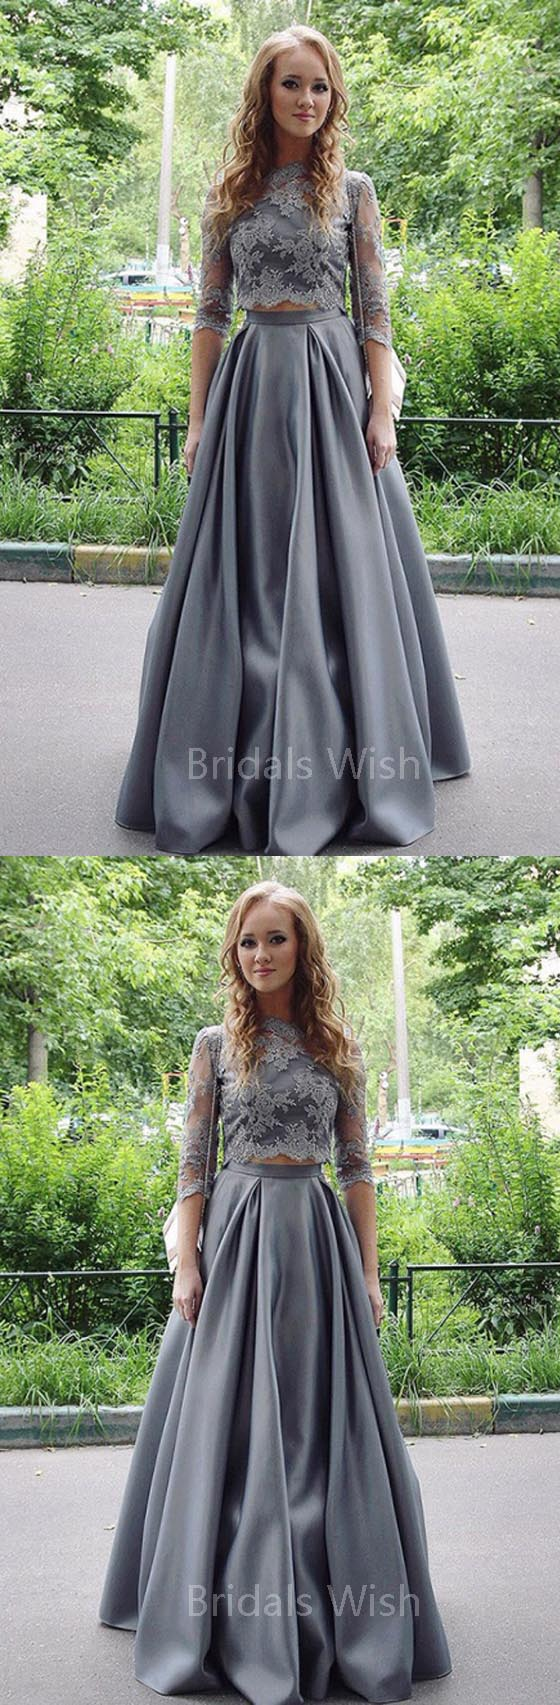 Elegant Grey Two Pieces Lace Top Half Sleeves Floor Length Evening Prom Dresses, BW0528